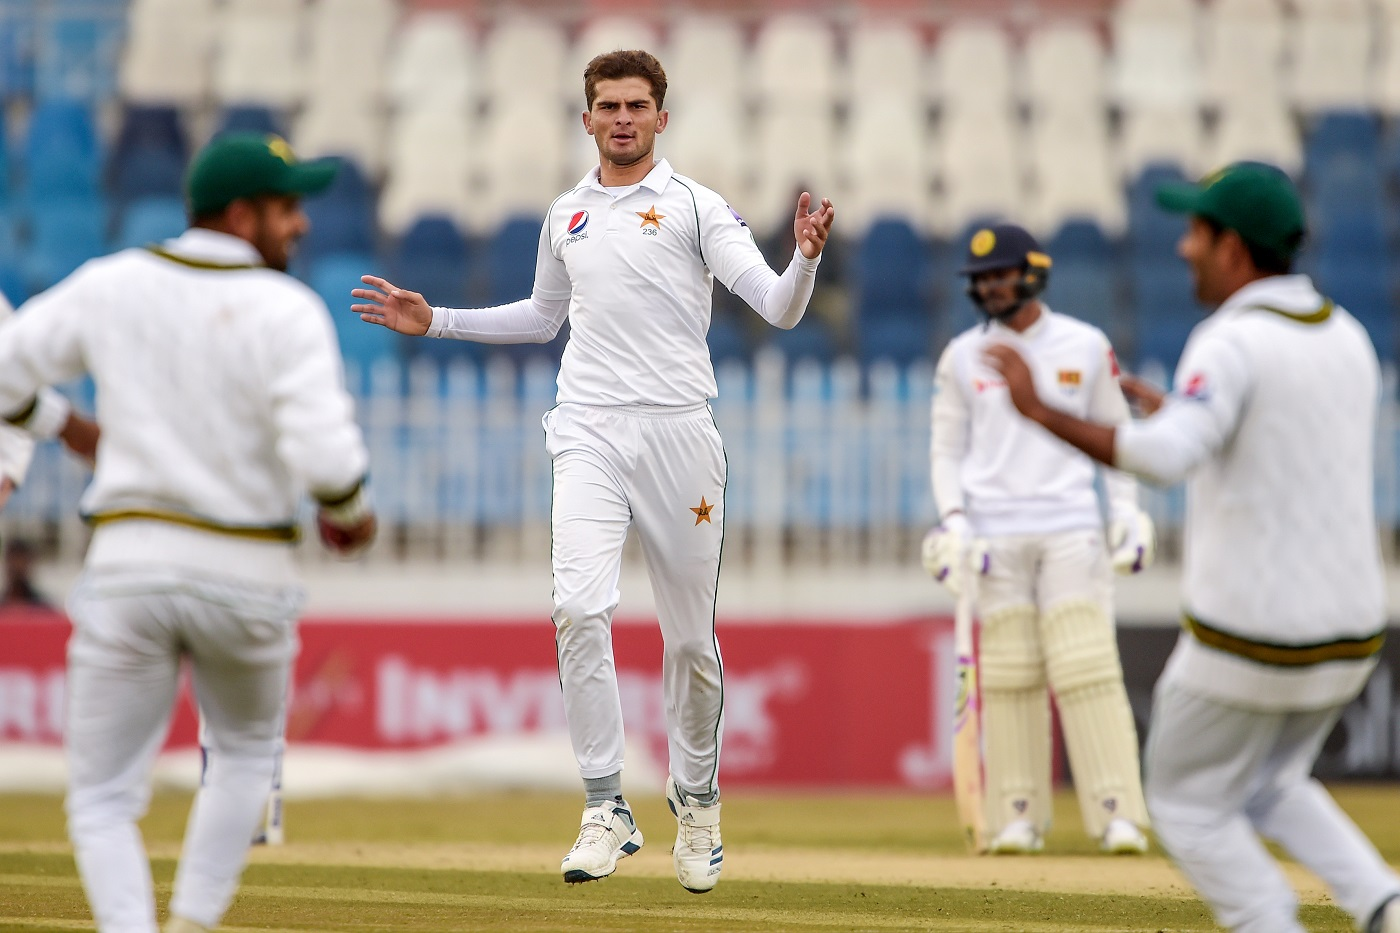 Rain and bad light sees less than 20 overs bowled on Day 2, Sri Lanka 263/6 against Pakistan